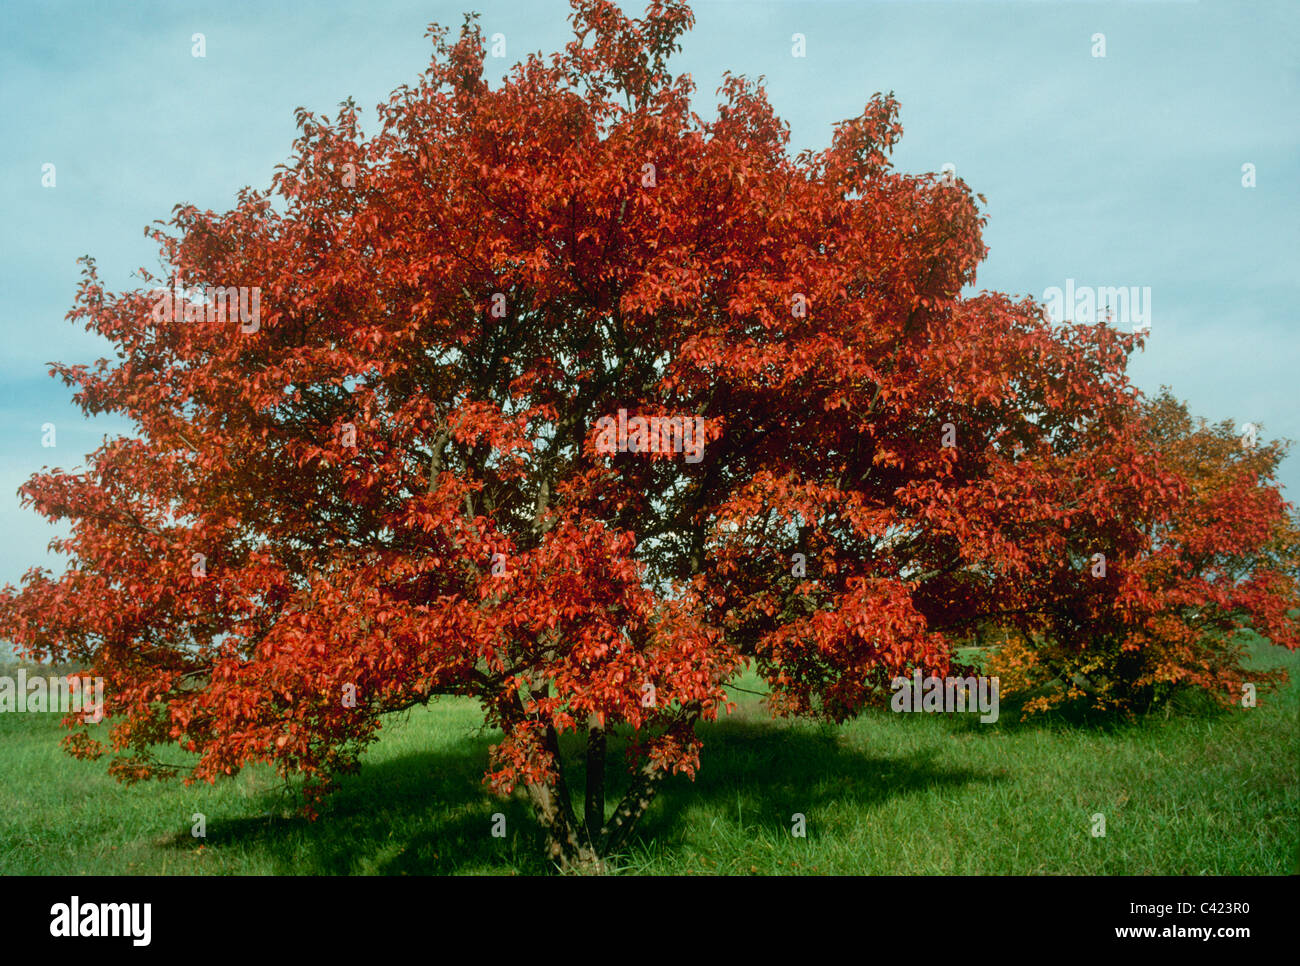 Acer Ginnala Or Amur Maple Known For Flame Colored Bright Leaves In